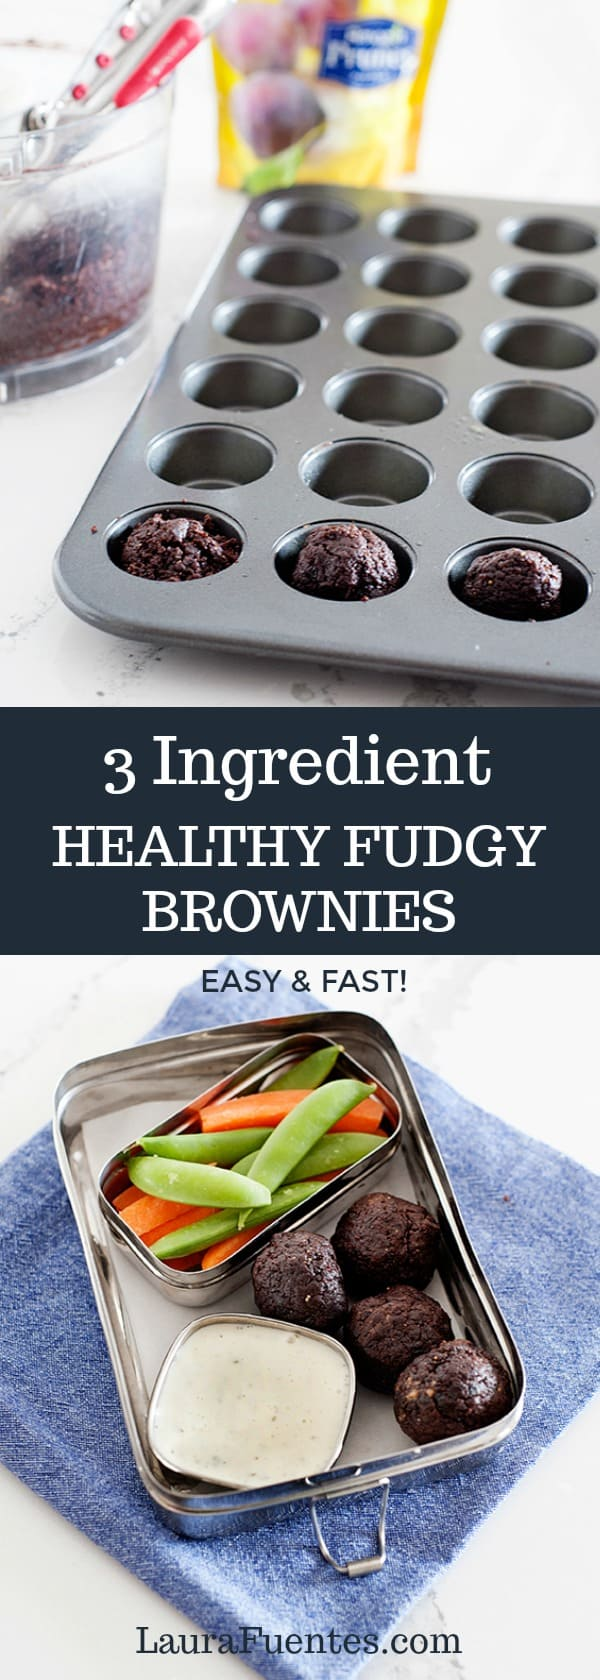 These 3 ingredient healthy fudgy brownies are the bomb. They have no added sugars and they are so good it's hard to stop eating just one!